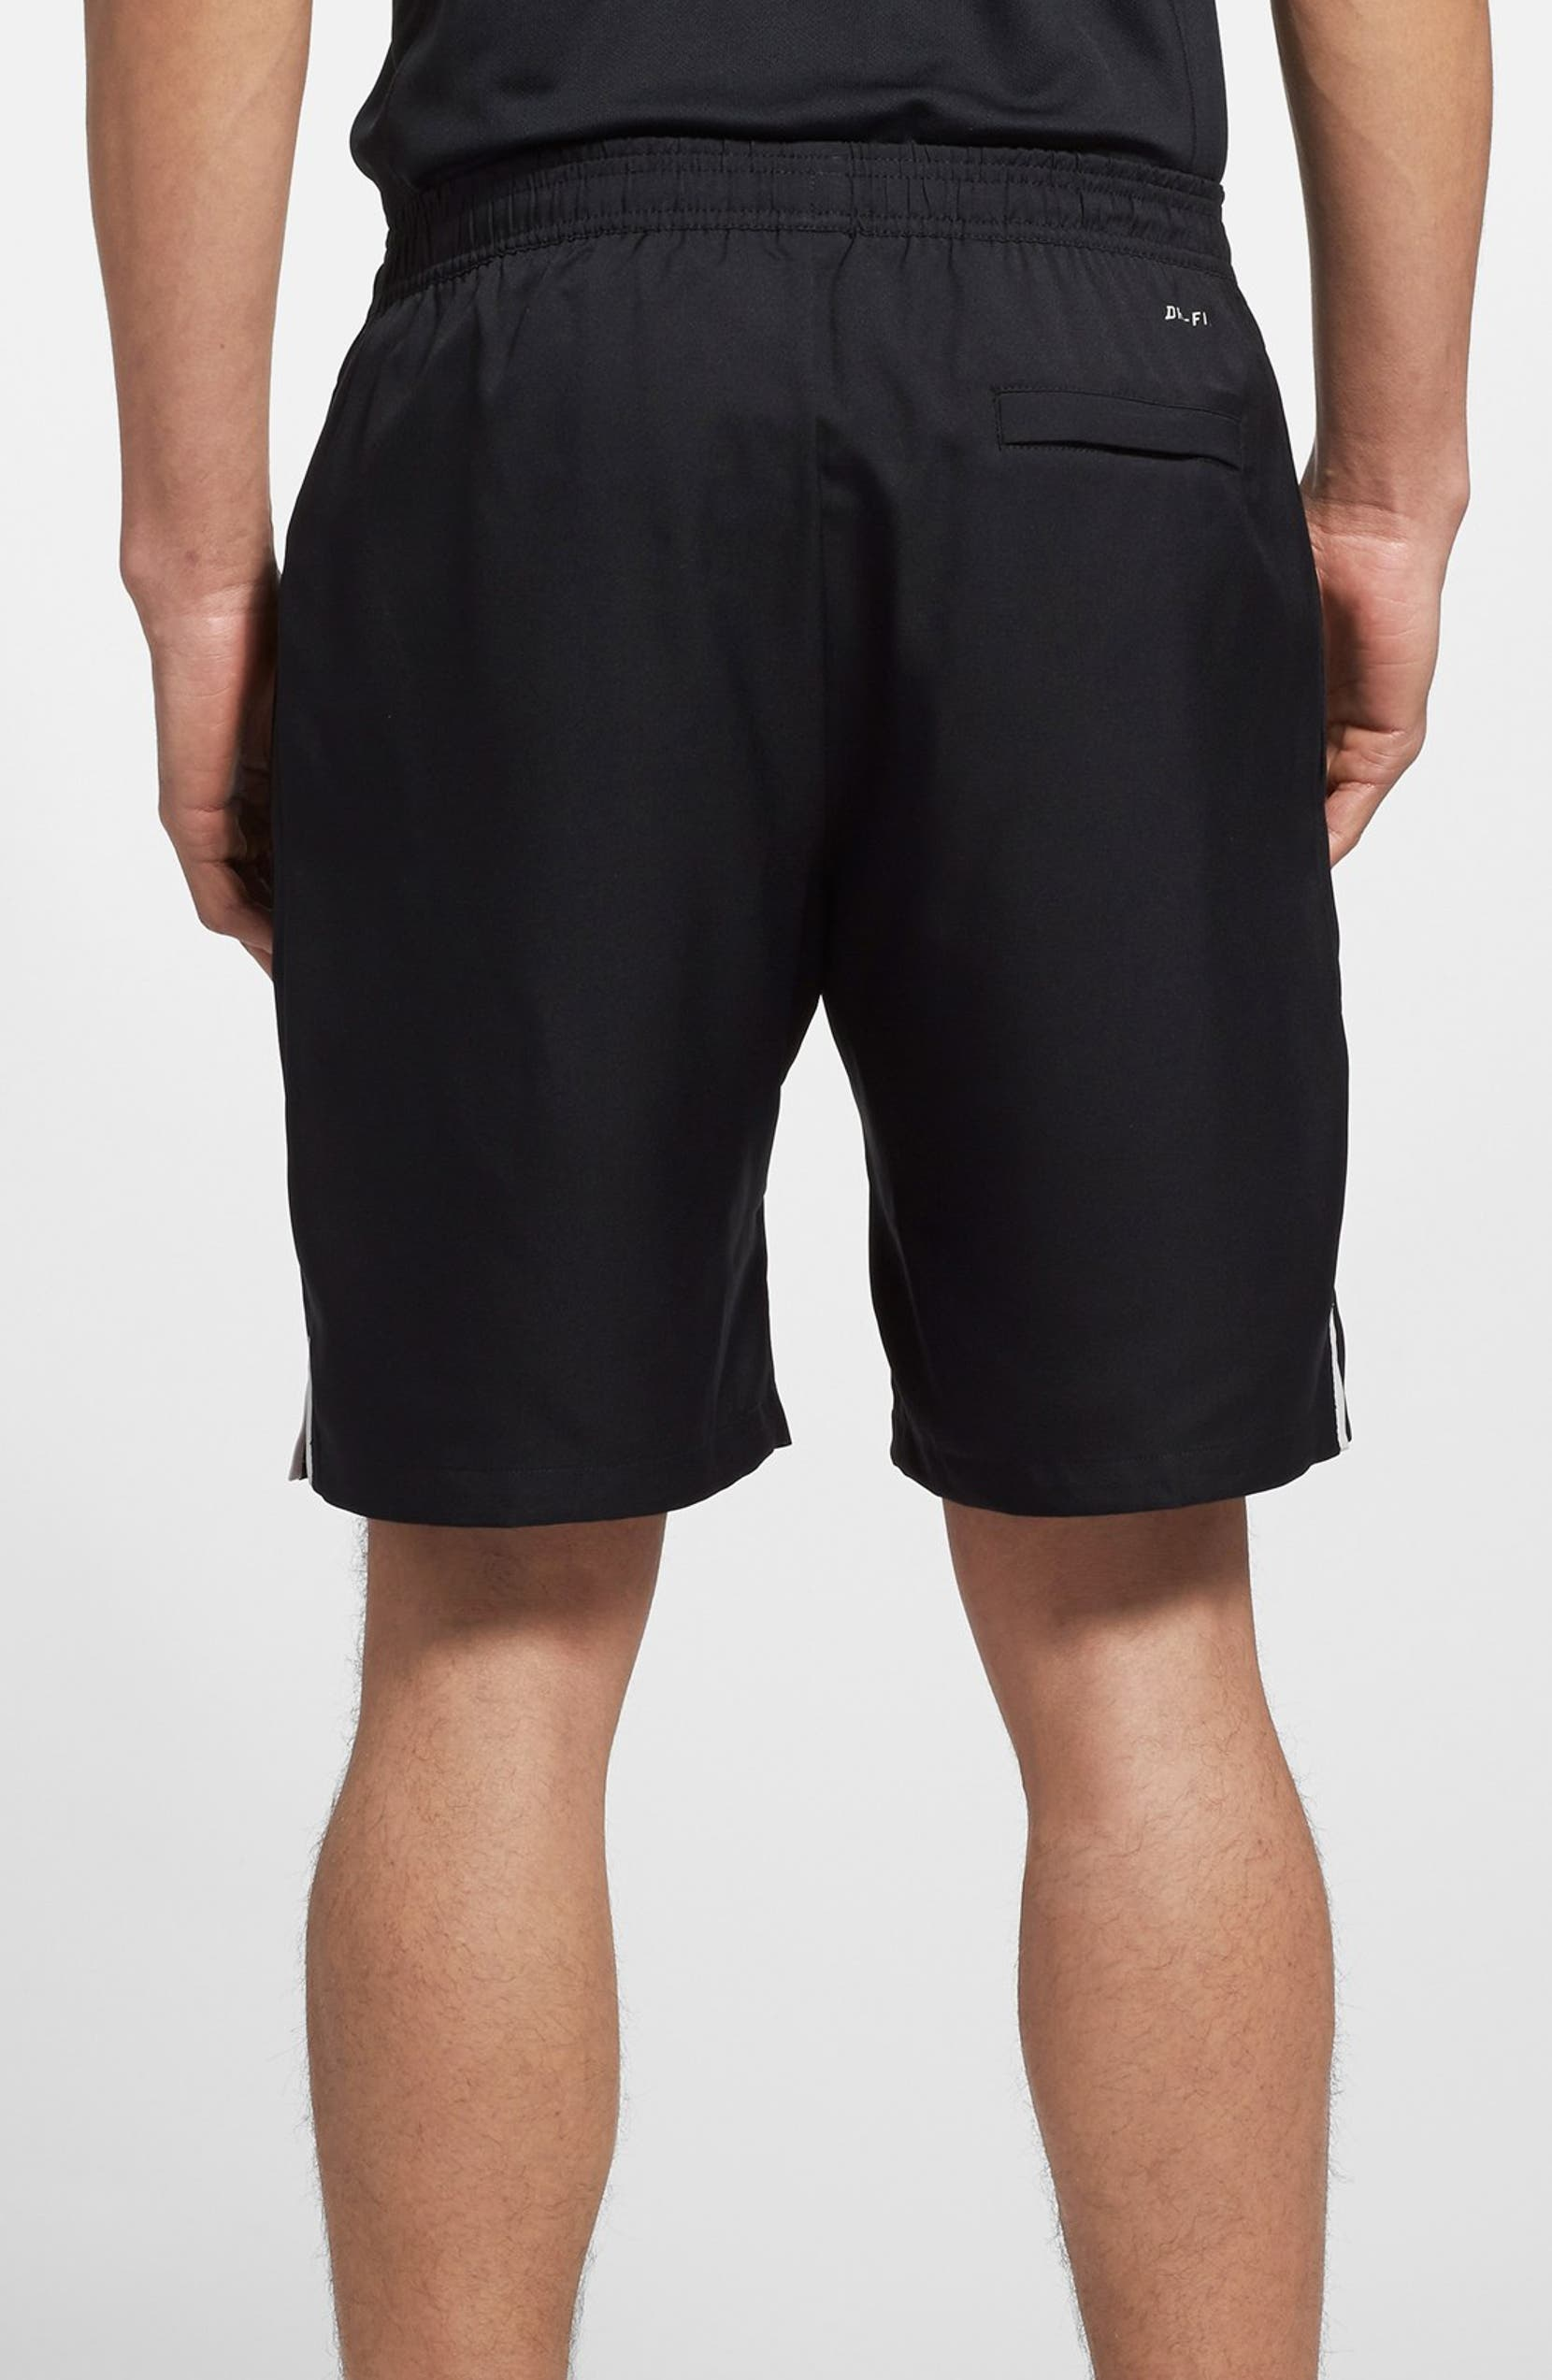 44827aaf9 Nike 'Court' Dri-FIT Tennis Shorts | Nordstrom